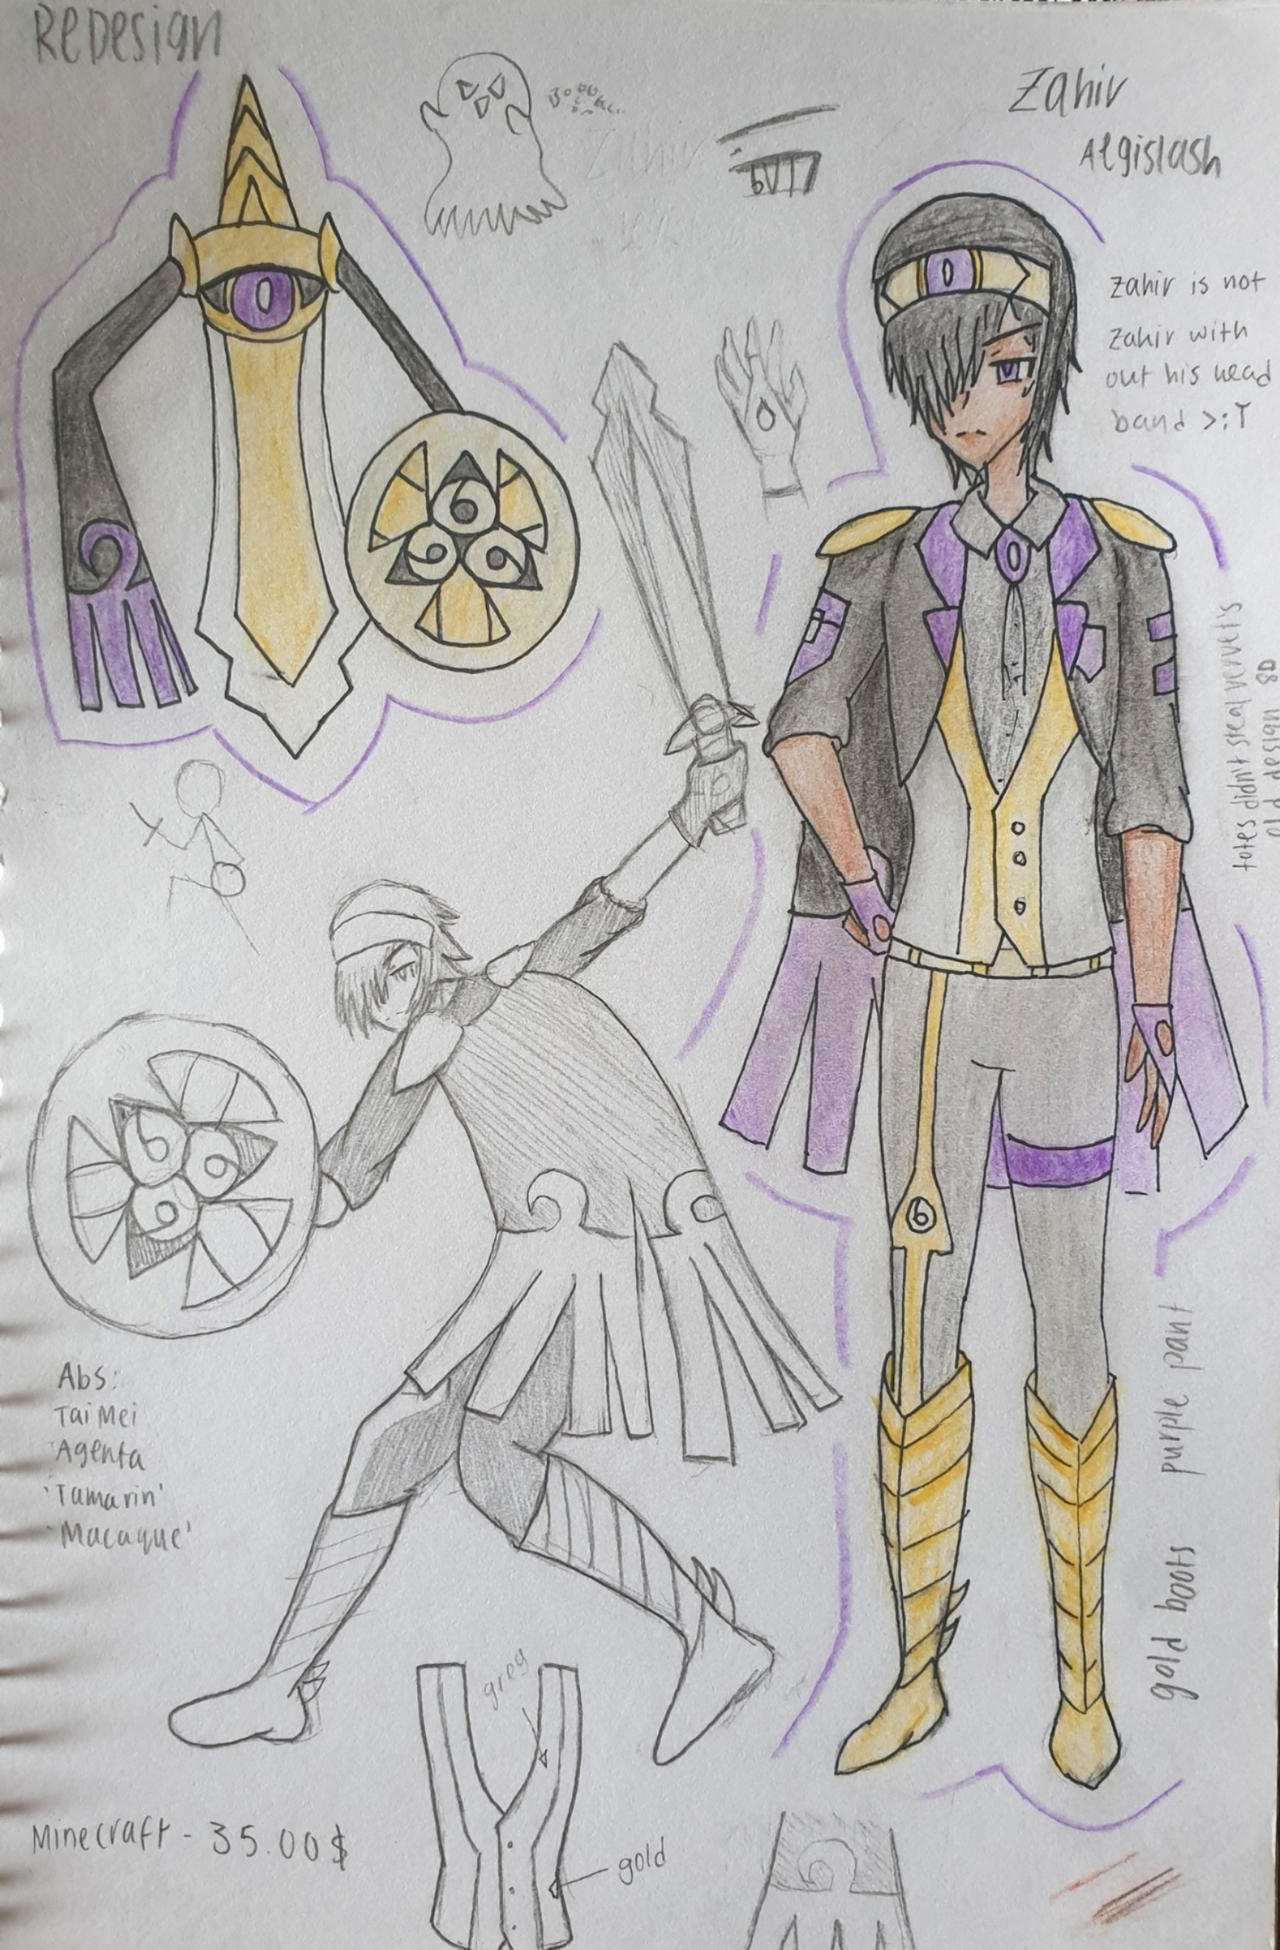 Redesign for Zahir!!1!